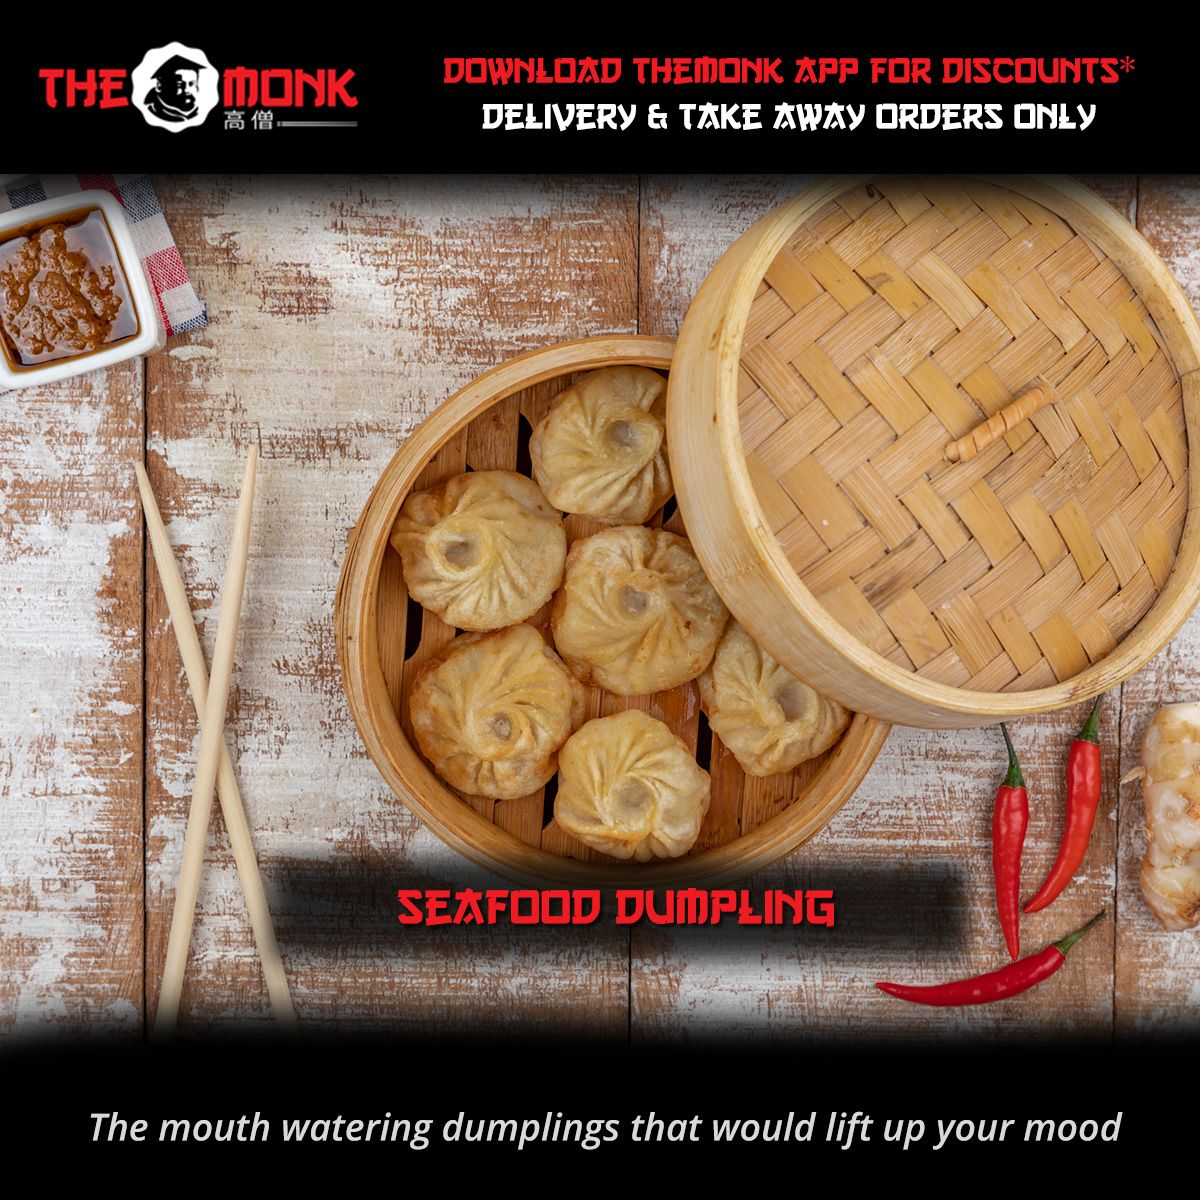 Lift up your mood with a festive dumpling basket this Eid from our kitchen straight to your table!  #TheMonk #DubaiFoodies #AsianCuisine #DubaiCuisine #snacks #eidmeals #eid2020 #asianfusion #MyDubai #StaySafepic.twitter.com/wPUF3lAgQB